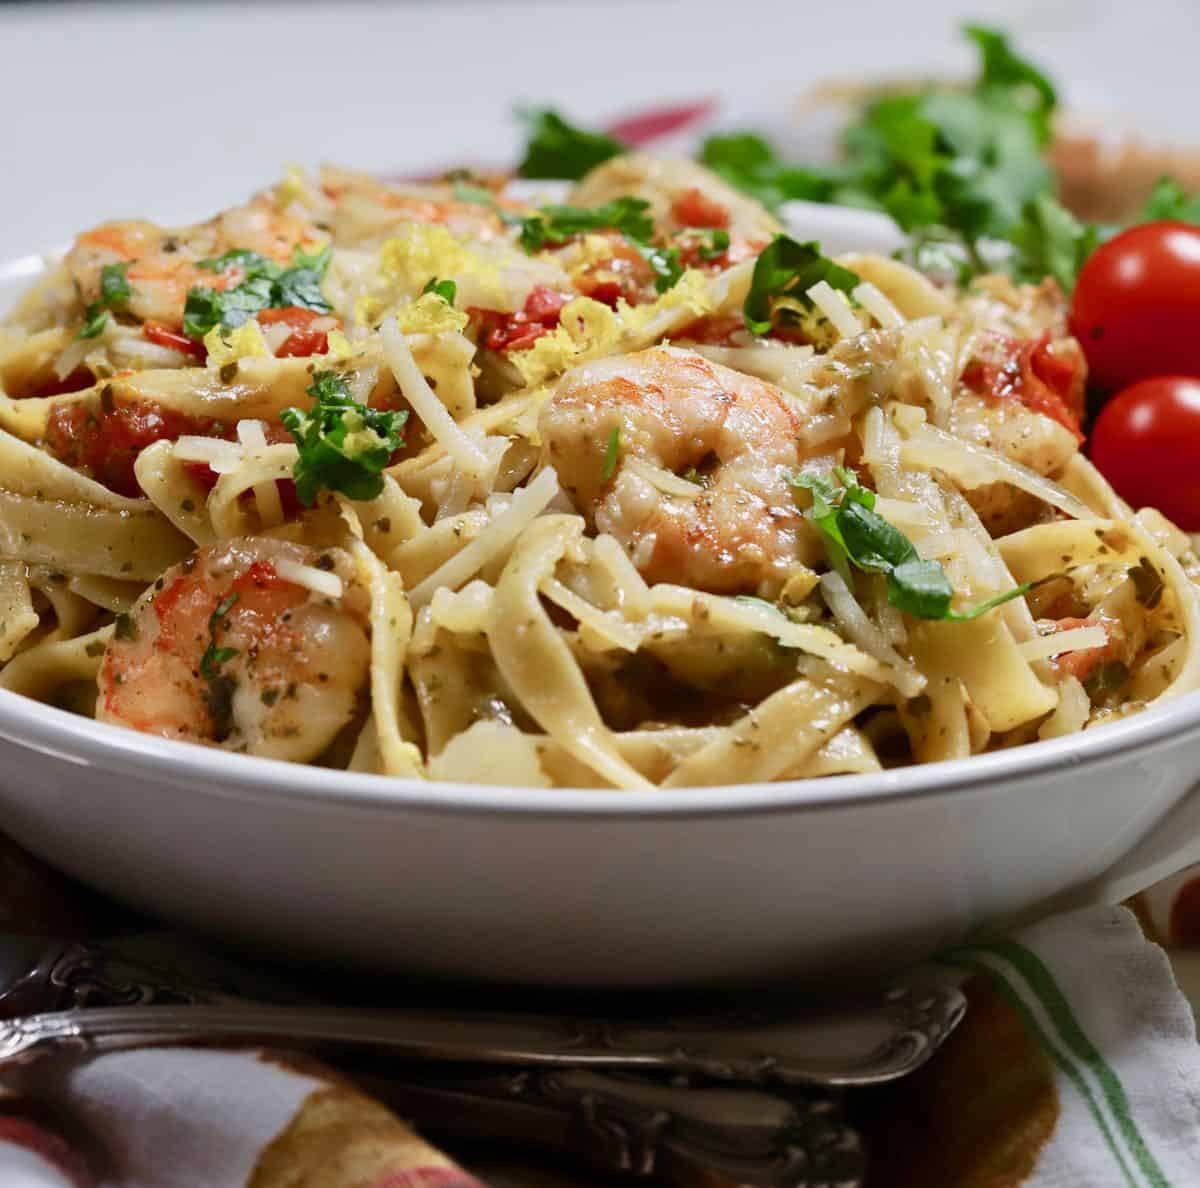 A large bowl with pasta, shrimp and tomatoes.